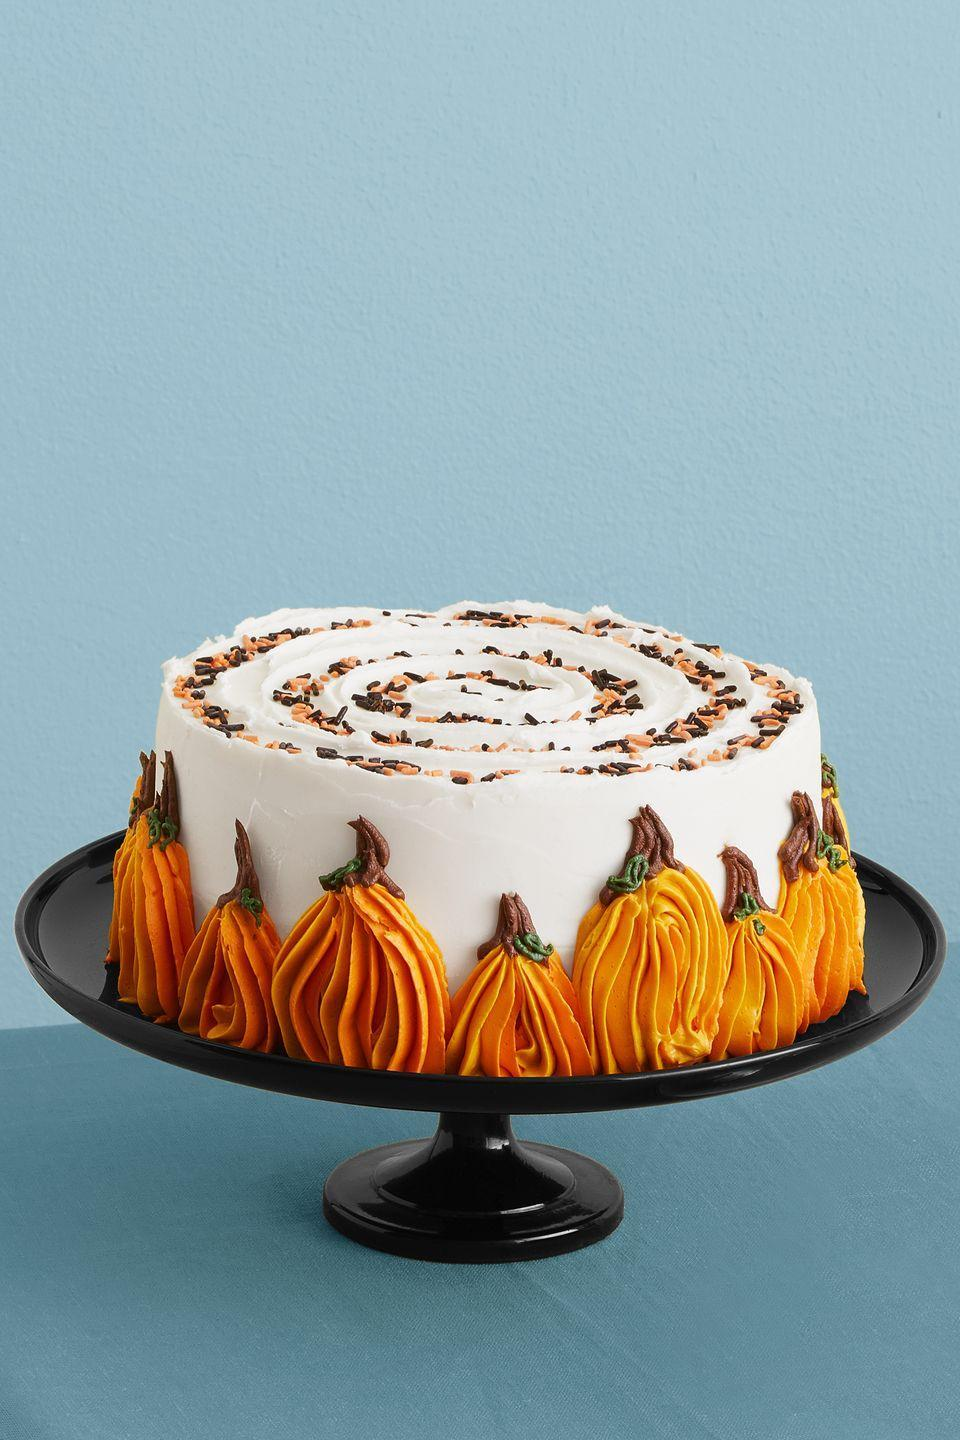 """<p>This delicious pumpkin cake comes with a tasty surprise inside: It's studded with chocolate chips!</p><p><em><a href=""""https://www.womansday.com/food-recipes/a33564114/pumpkin-chocolate-chip-cake-recioe/"""" rel=""""nofollow noopener"""" target=""""_blank"""" data-ylk=""""slk:Get the recipe for Pumpkin Chocolate Chip Cake."""" class=""""link rapid-noclick-resp"""">Get the recipe for Pumpkin Chocolate Chip Cake.</a></em></p>"""